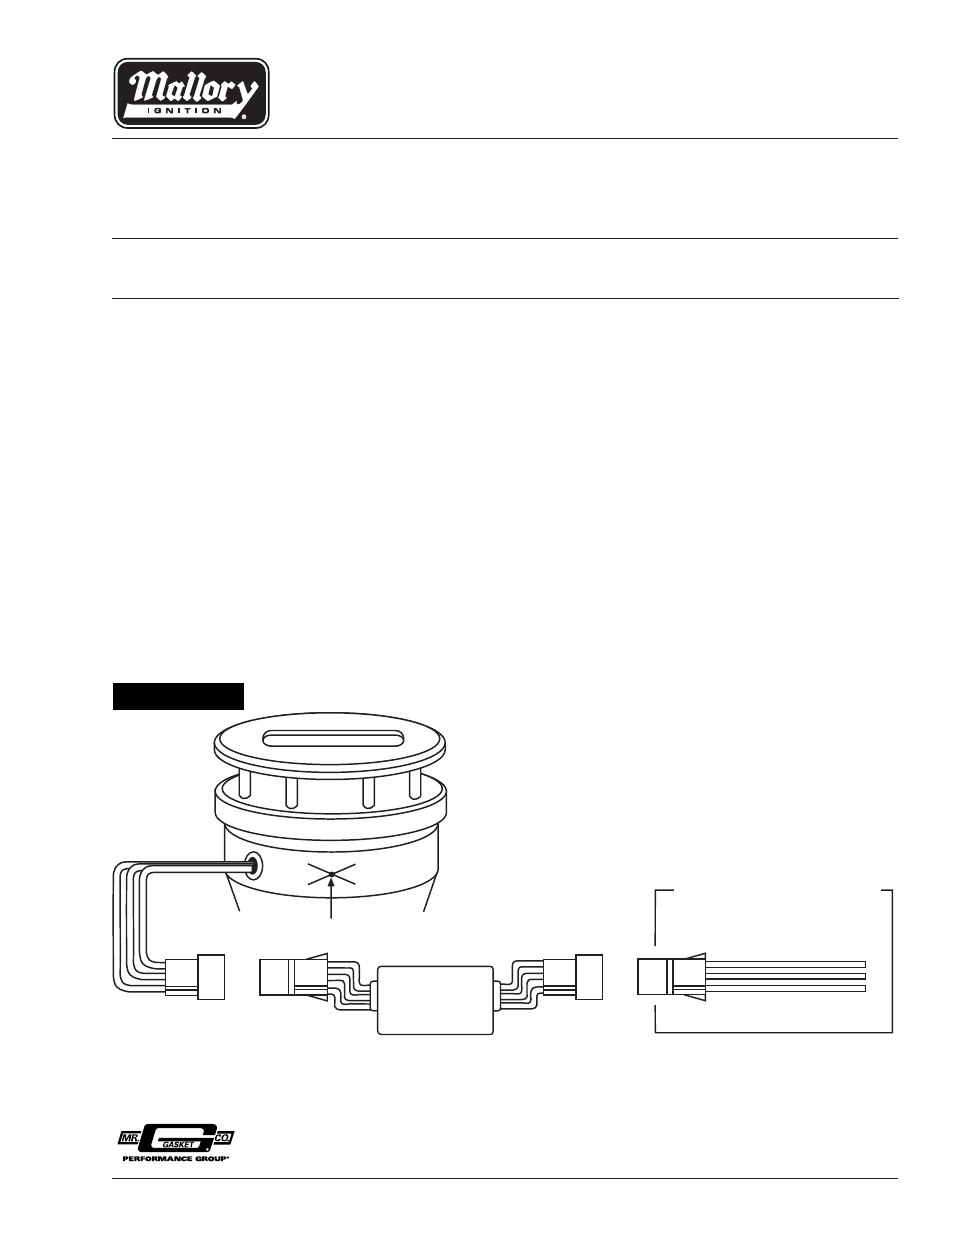 Outstanding Pro Comp 8000 Distributor Wiring Diagram Embellishment on briggs and stratton 18 hp wiring diagram, equus pro tach wiring diagram, pro comp wheel warranty, pro comp suspension lift kit, basic tractor wiring diagram, pro comp rev limiter, auto meter wiring diagram, arb air compressor wiring diagram, ignition coil circuit diagram, distributor wiring diagram, lt1 swap wiring diagram, pro comp distributor, pro comp stabilizer, pro comp ignition coil, coil wiring diagram, tachometer wiring diagram, ignition system diagram, pro comp shocks, pro comp wheel packages, pro comp wiring harness,